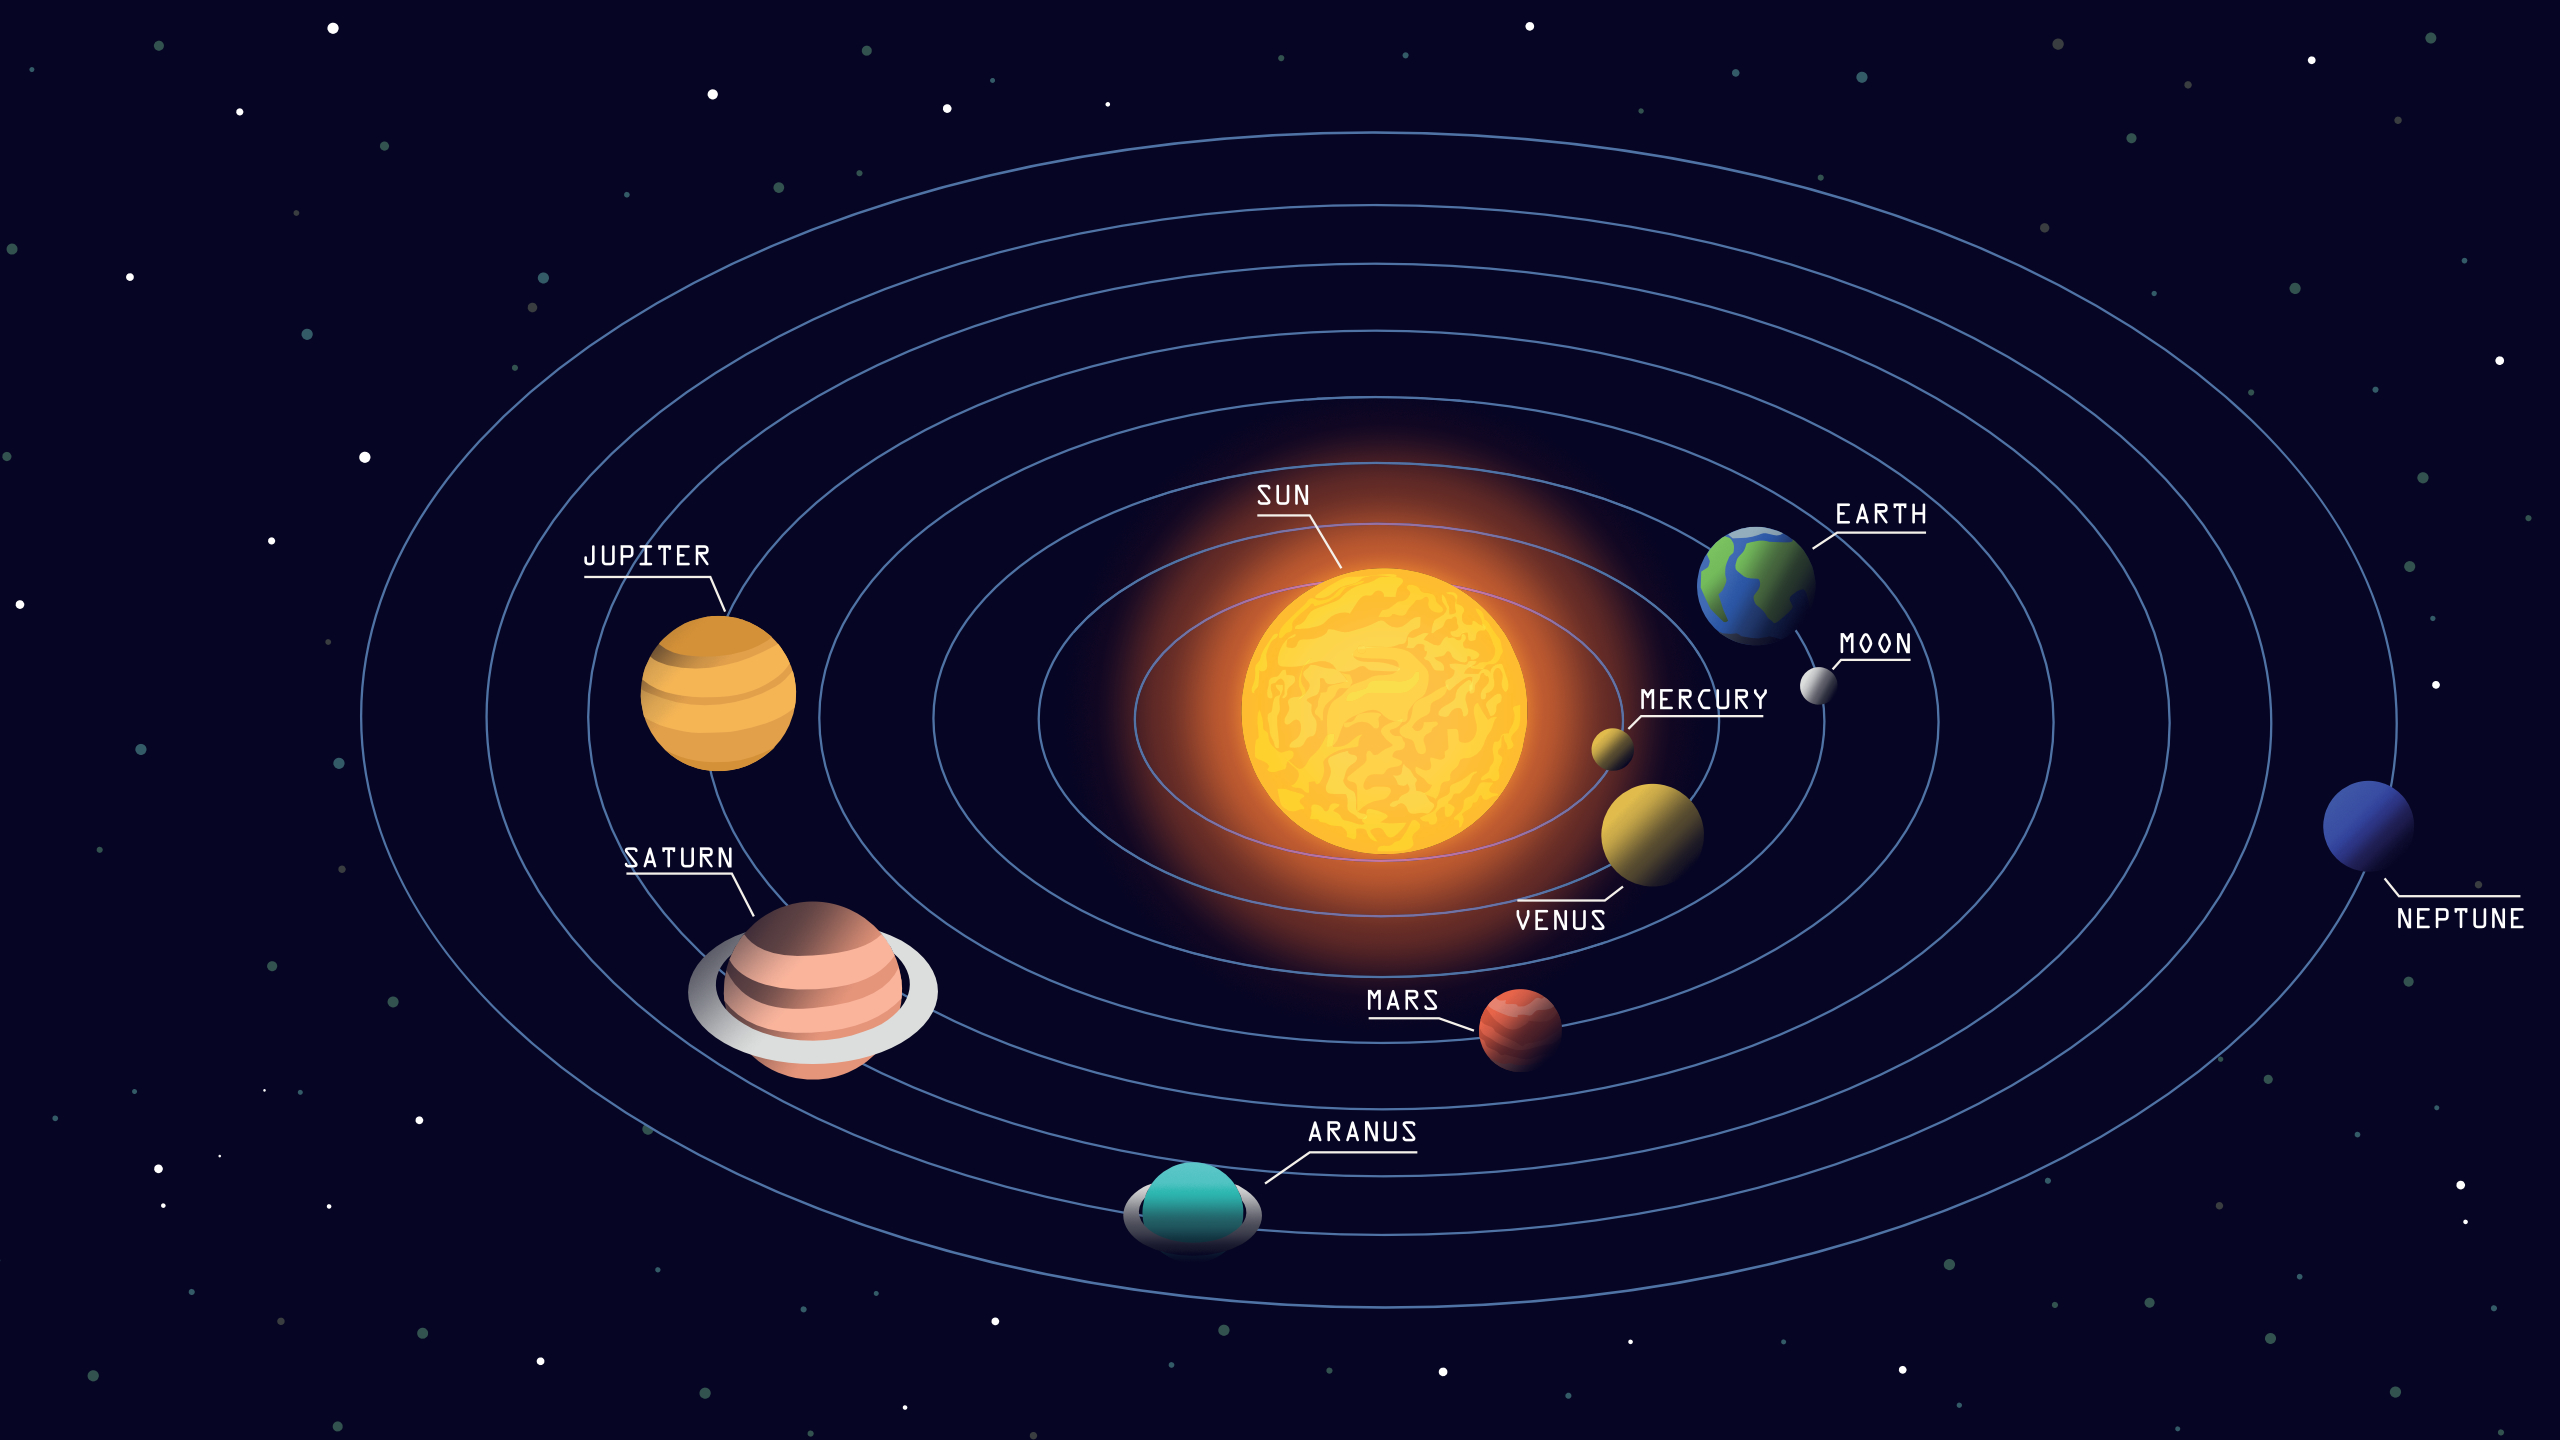 General 2560x1440 planet space illustration Solar System